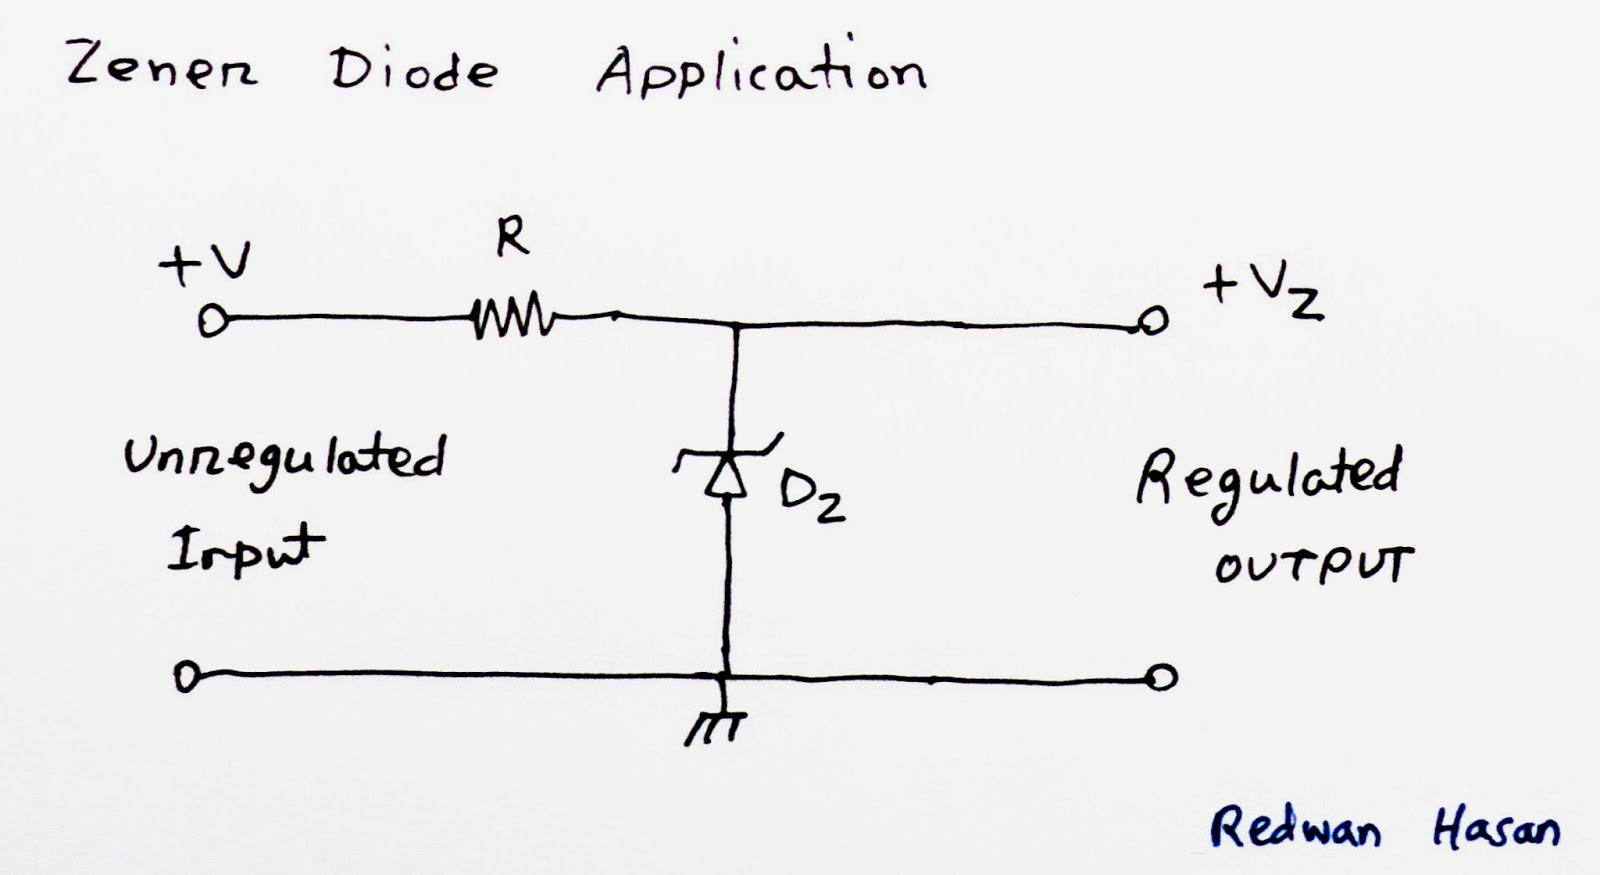 scavenger u0026 39 s blog  zener diode and linear voltage regulation